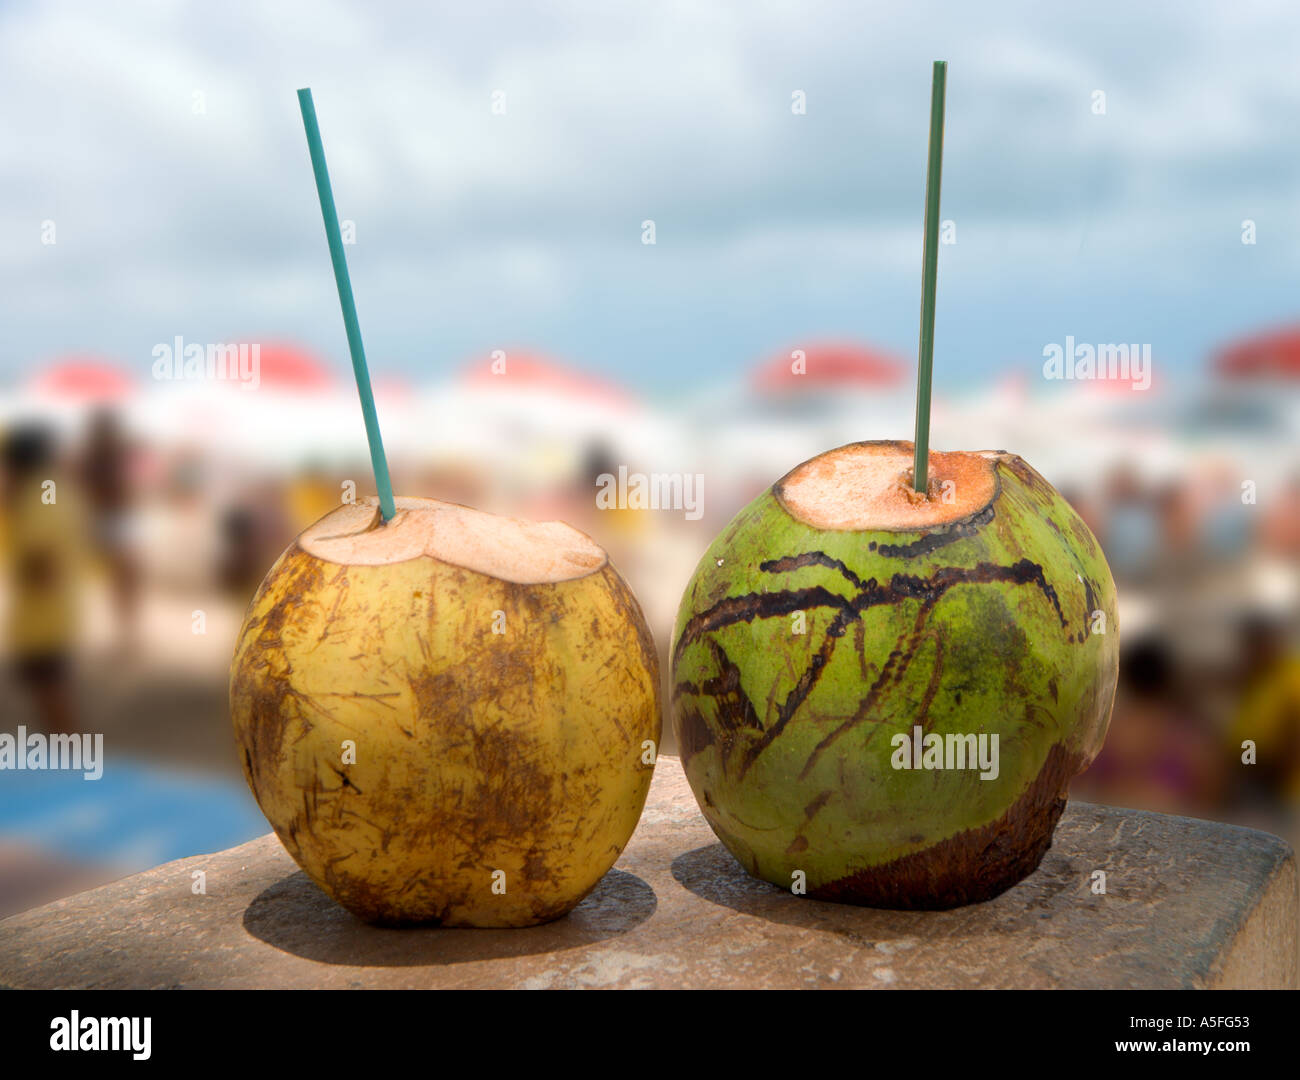 Fresh coconut milk, Ponta Negra, Natal, Rio Grande do Norte, Brazil - Stock Image